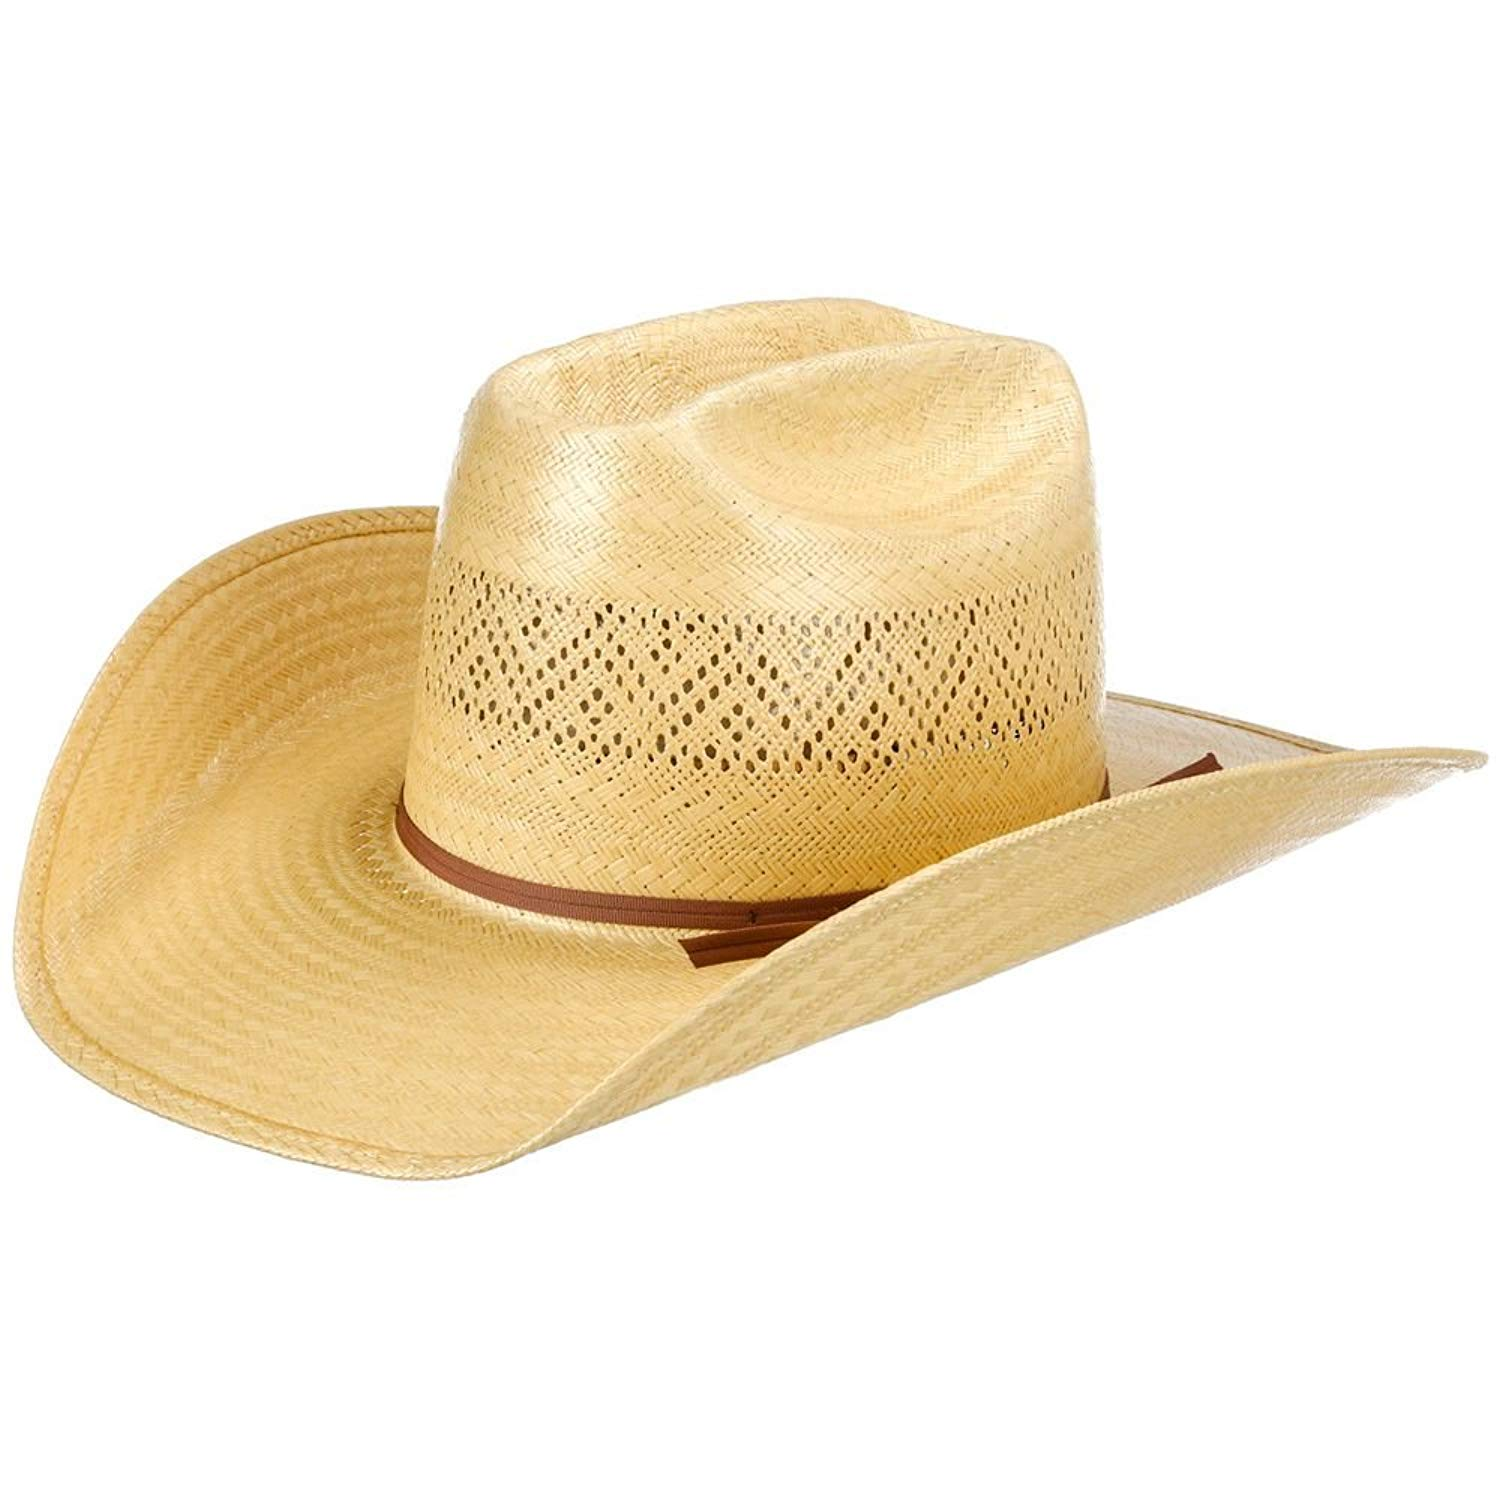 9cf381883afe5 NRS American Hat Company Mens Solid Wheat Open Crown 4 Brim Straw Cowboy Hat